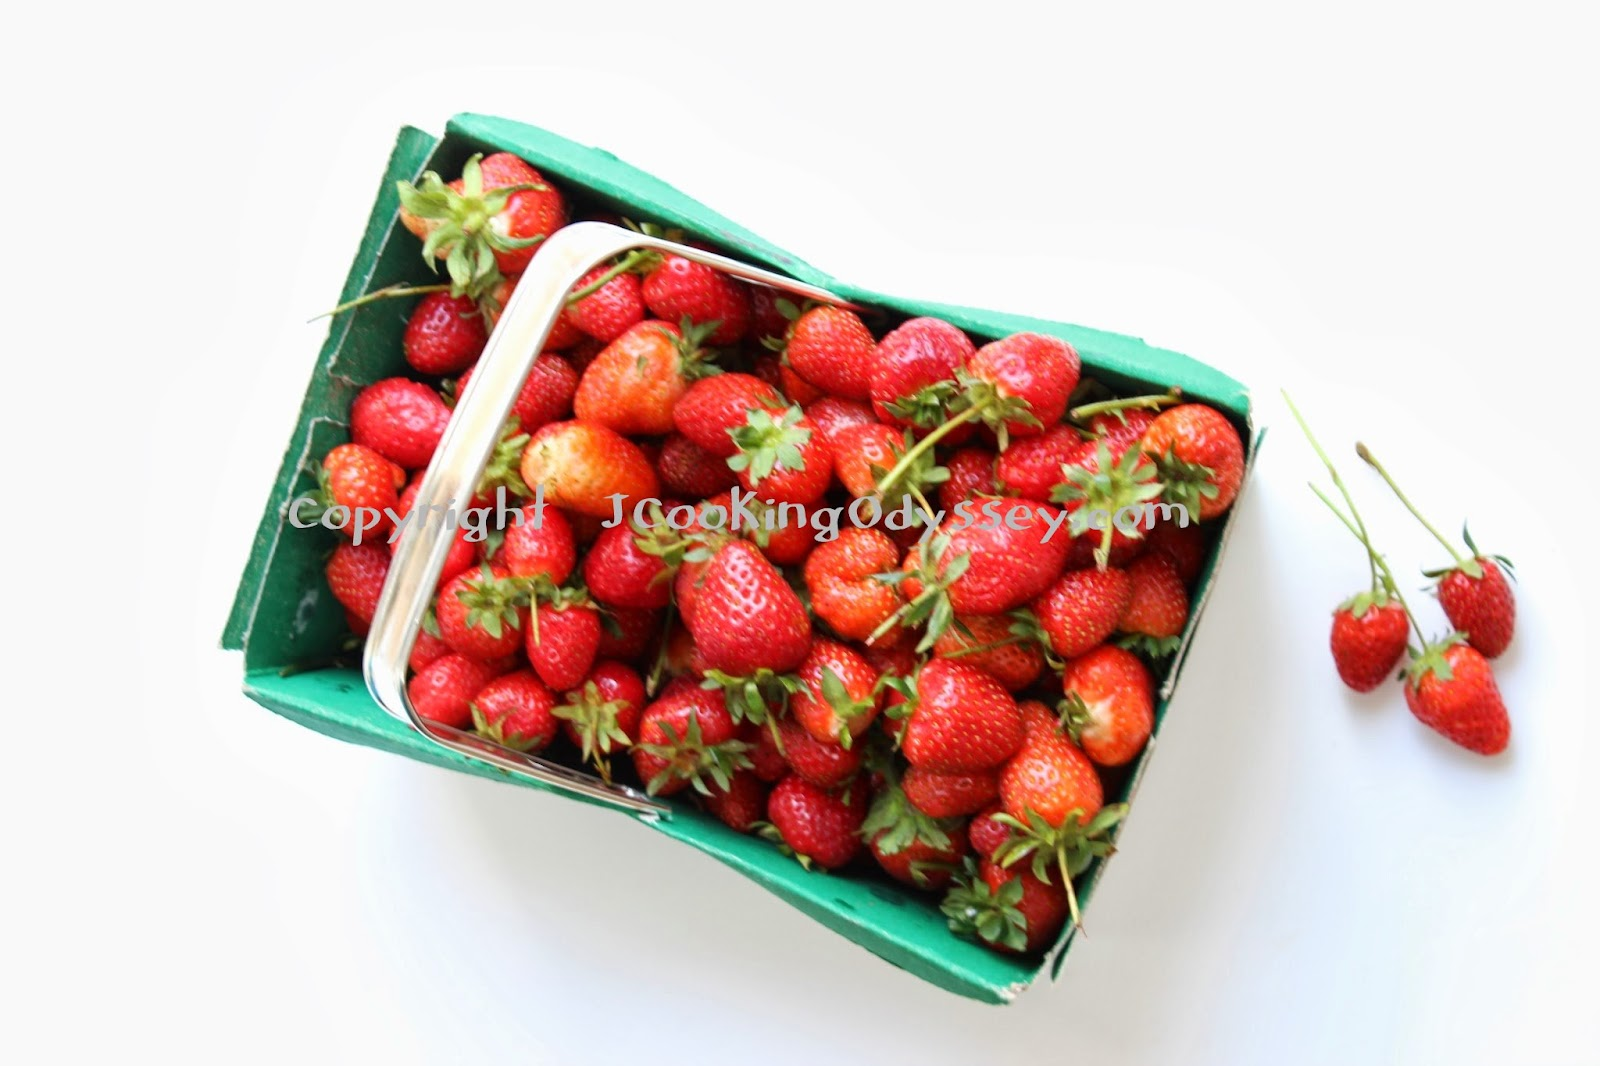 Jagruti's Cooking Odyssey: Roasted Spiced Strawberry and ...